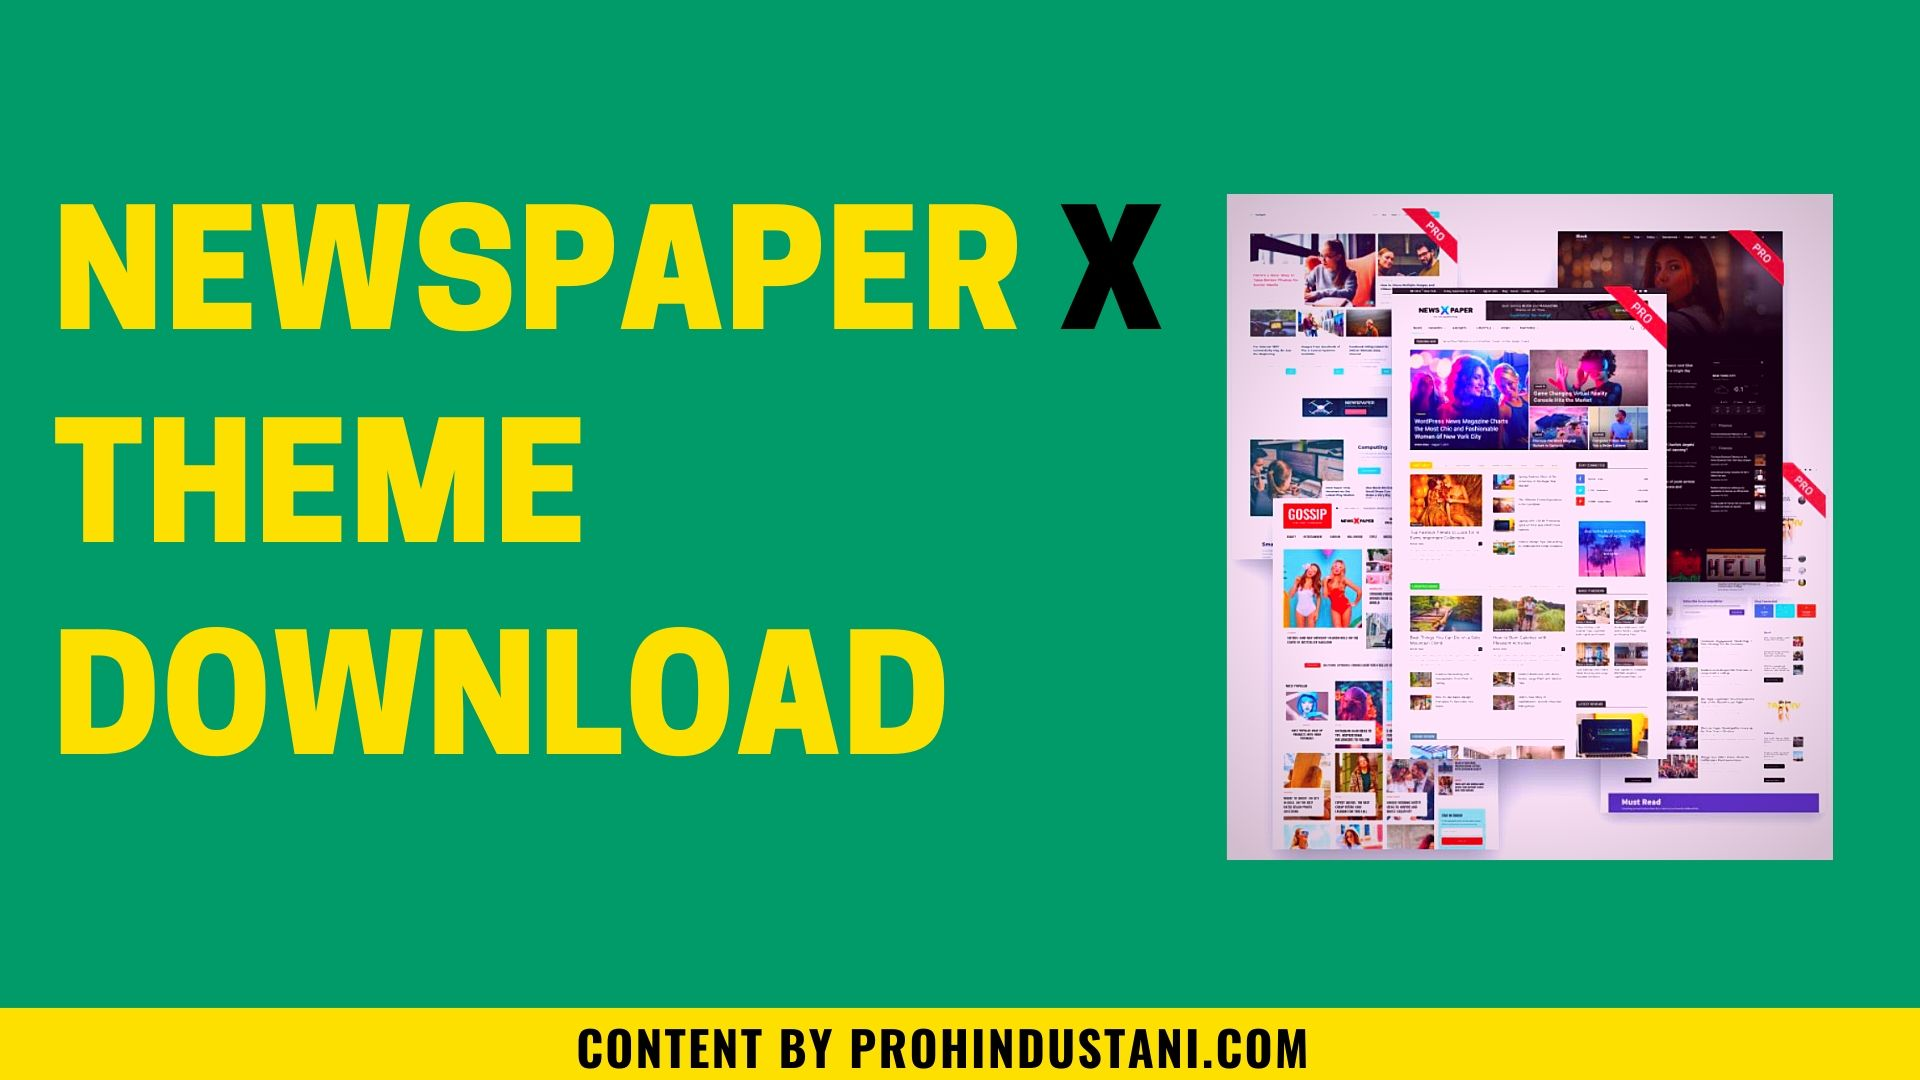 Newspaper x theme with key